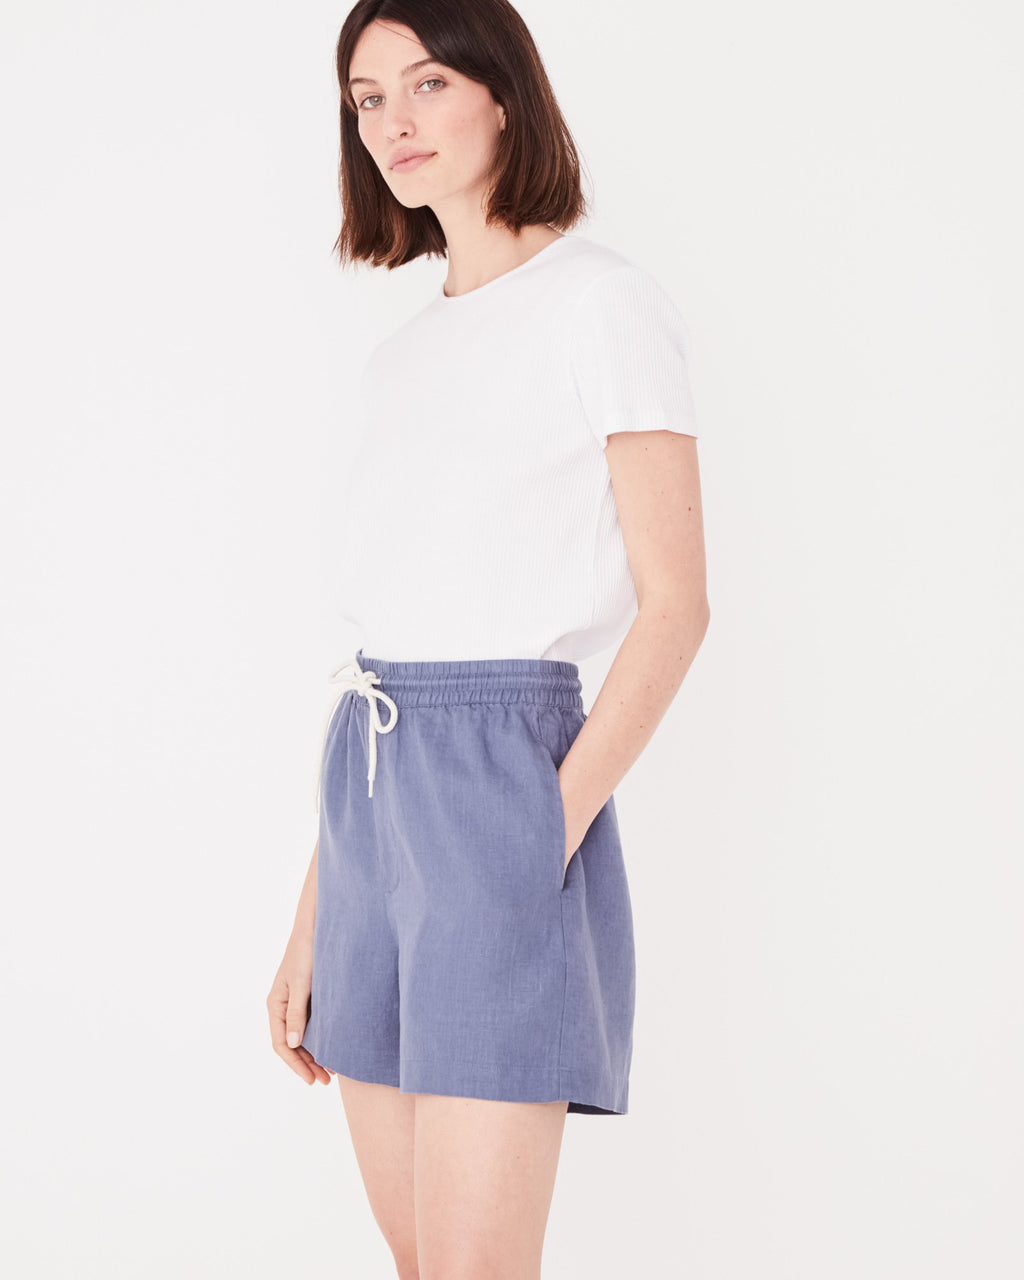 Assembly Label Ease Linen Short - Newport Blue